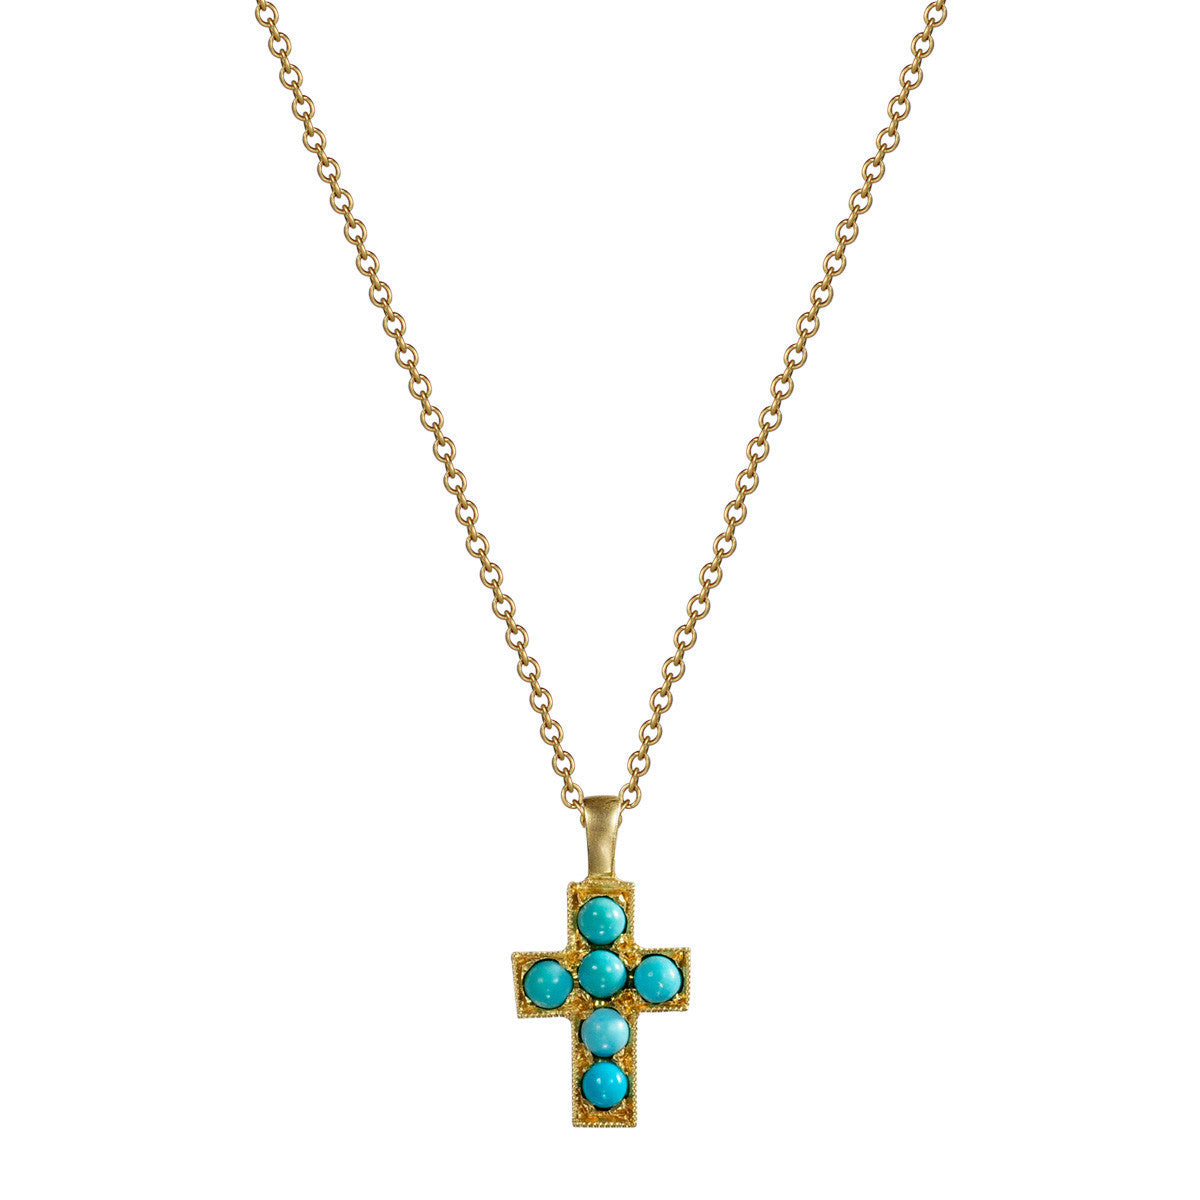 18k gold cross pendant with turquoise stones mero 18k gold cross pendant with turquoise stones aloadofball